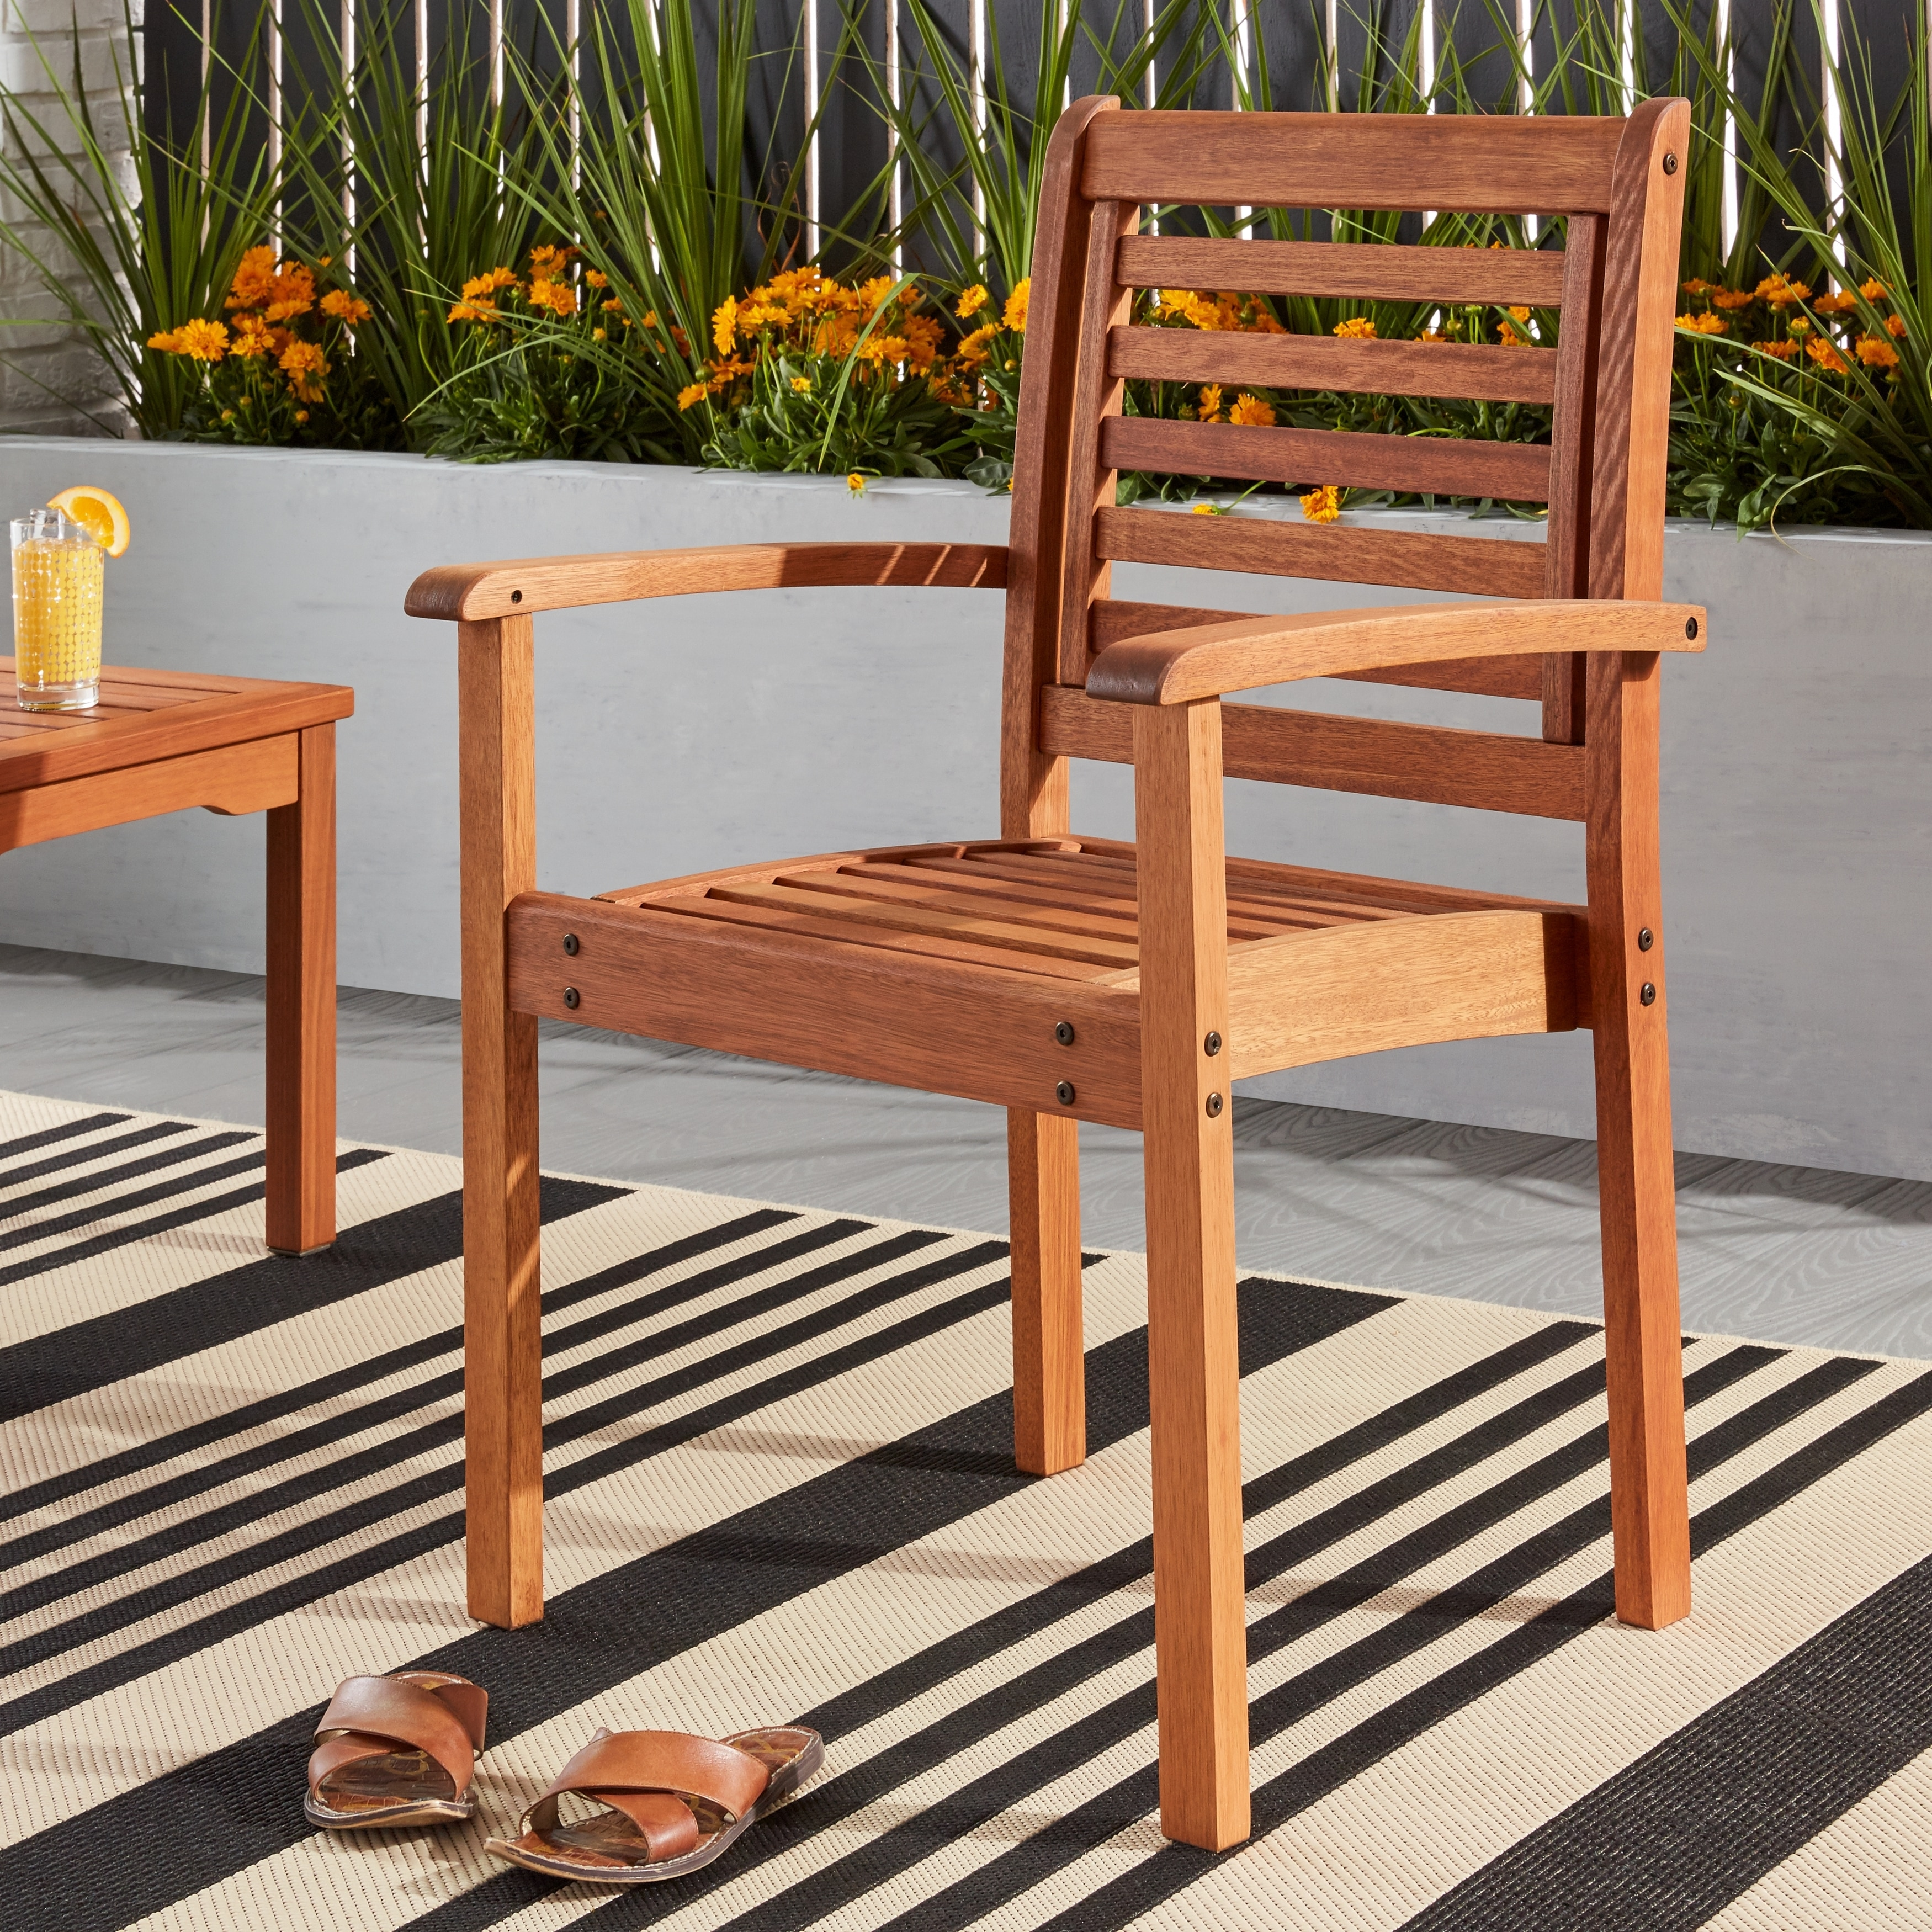 Havenside home tottenville eucalyptus wood stackable chair